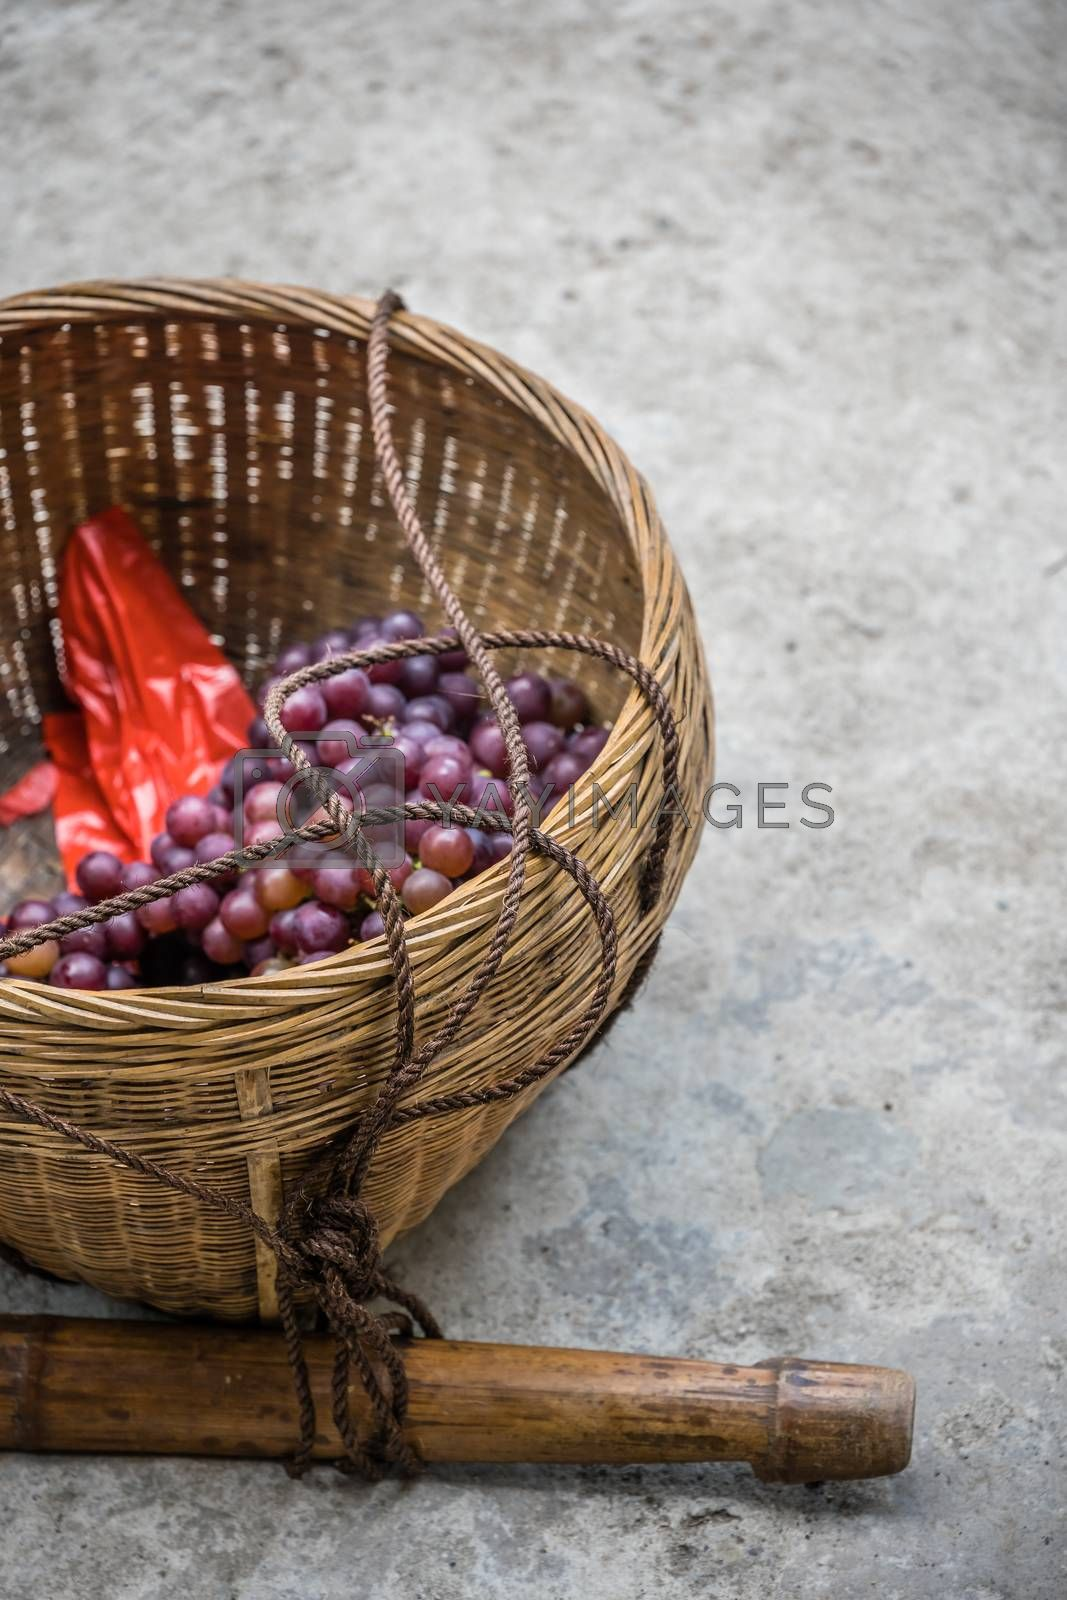 Royalty free image of Vertical shot of fresh grapes in a basket on the ground by pawopa3336